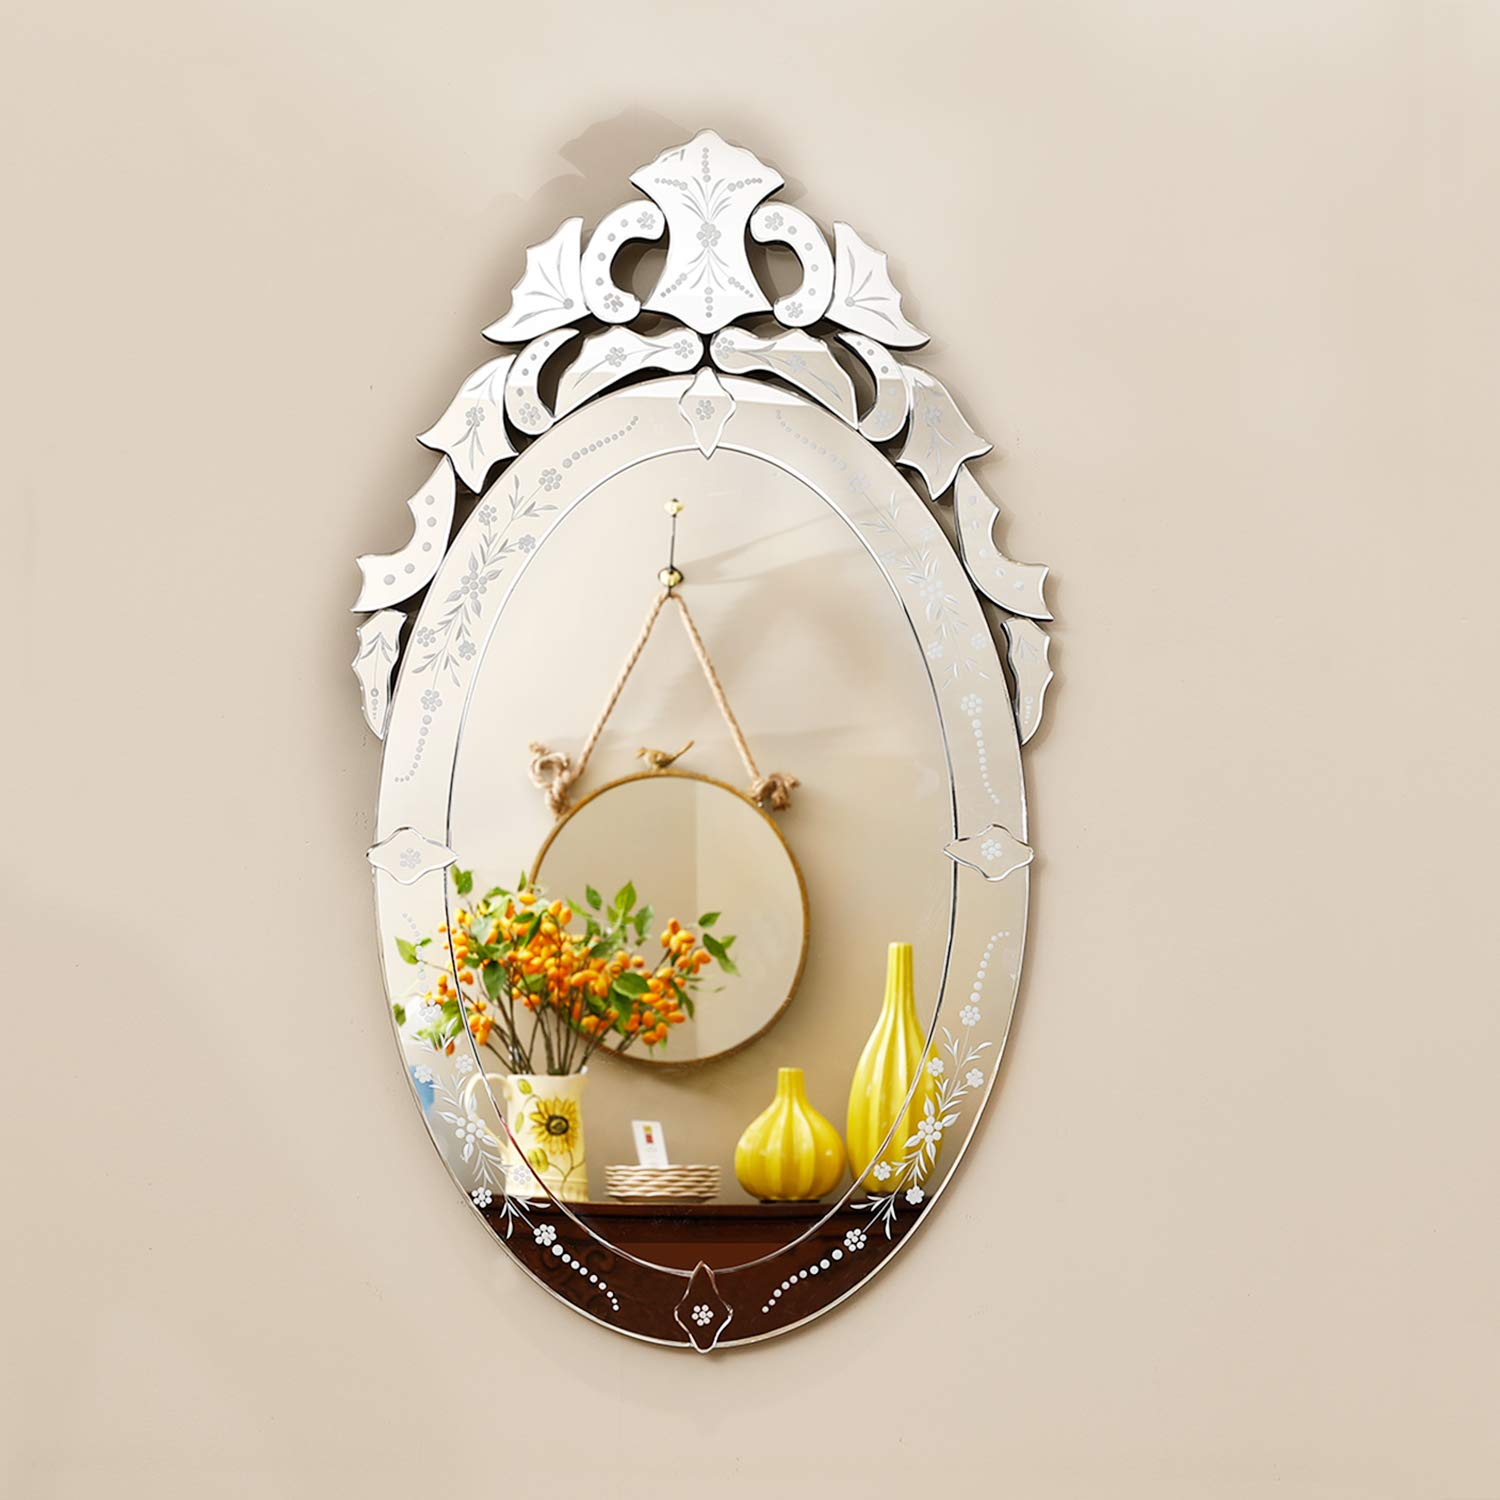 """KOHROS Wall Mounted Squared Mirror, Venetian Mirror Decor for The Living Room, Bathroom, Bedroom (W 24"""" X H 42"""" Oval)"""